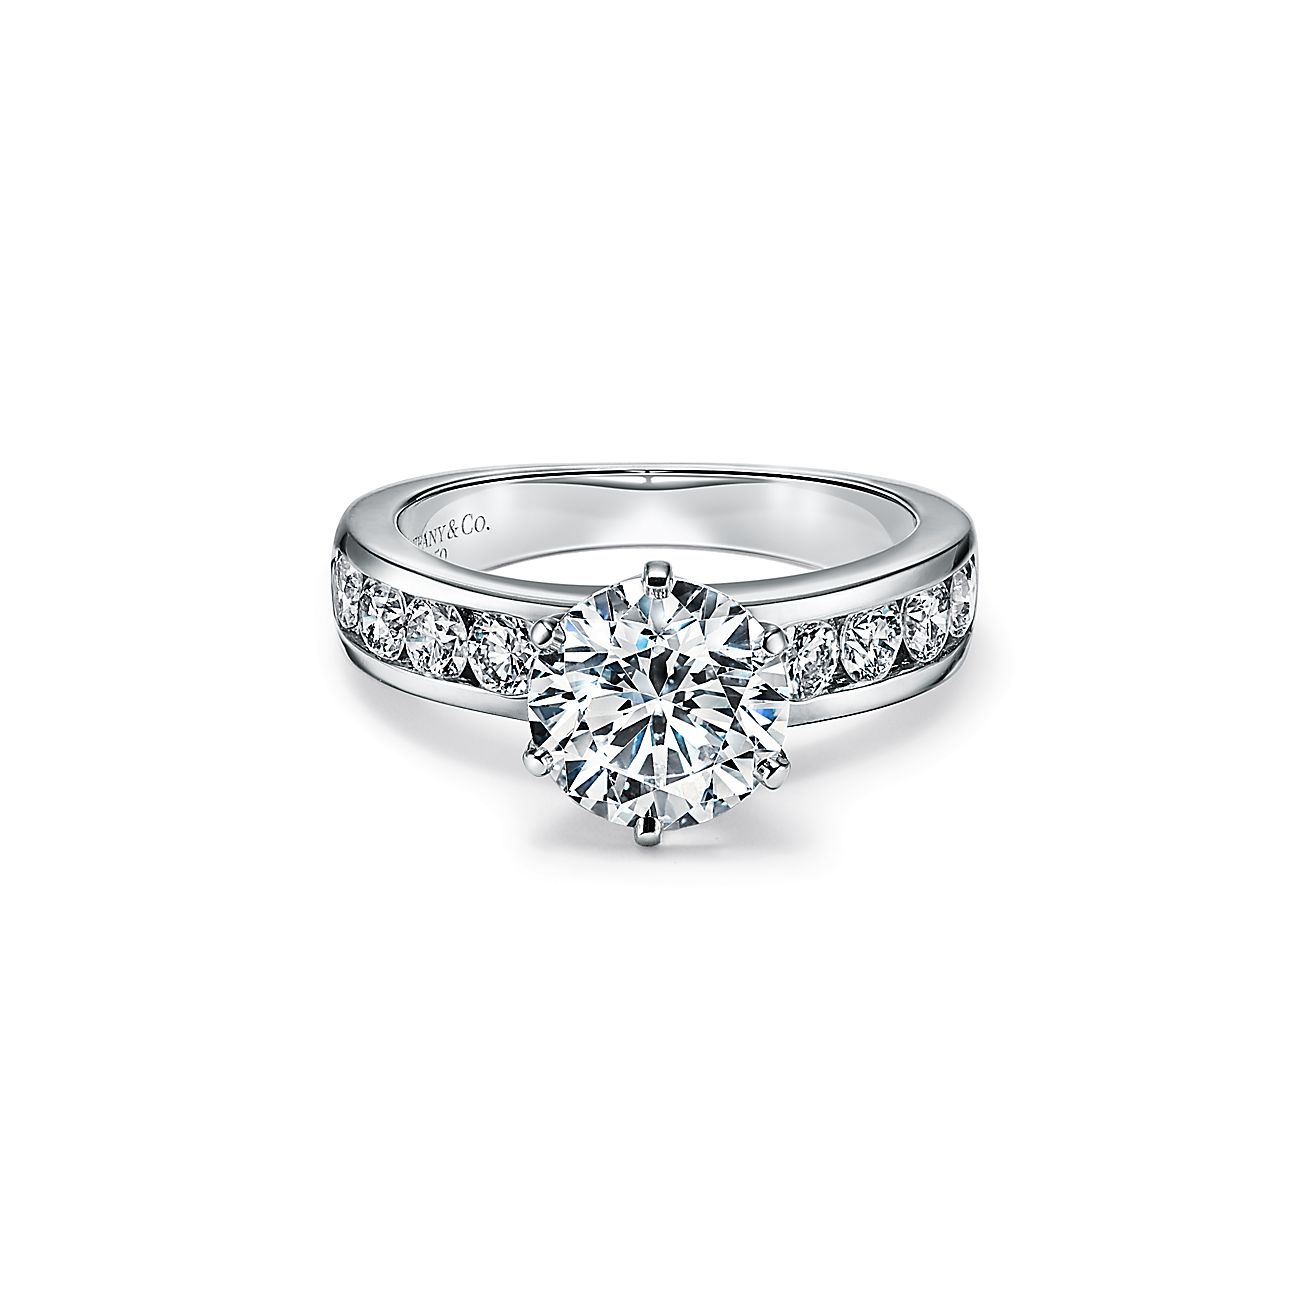 The Tiffany Setting Engagement Ring With A Channel Set Diamond